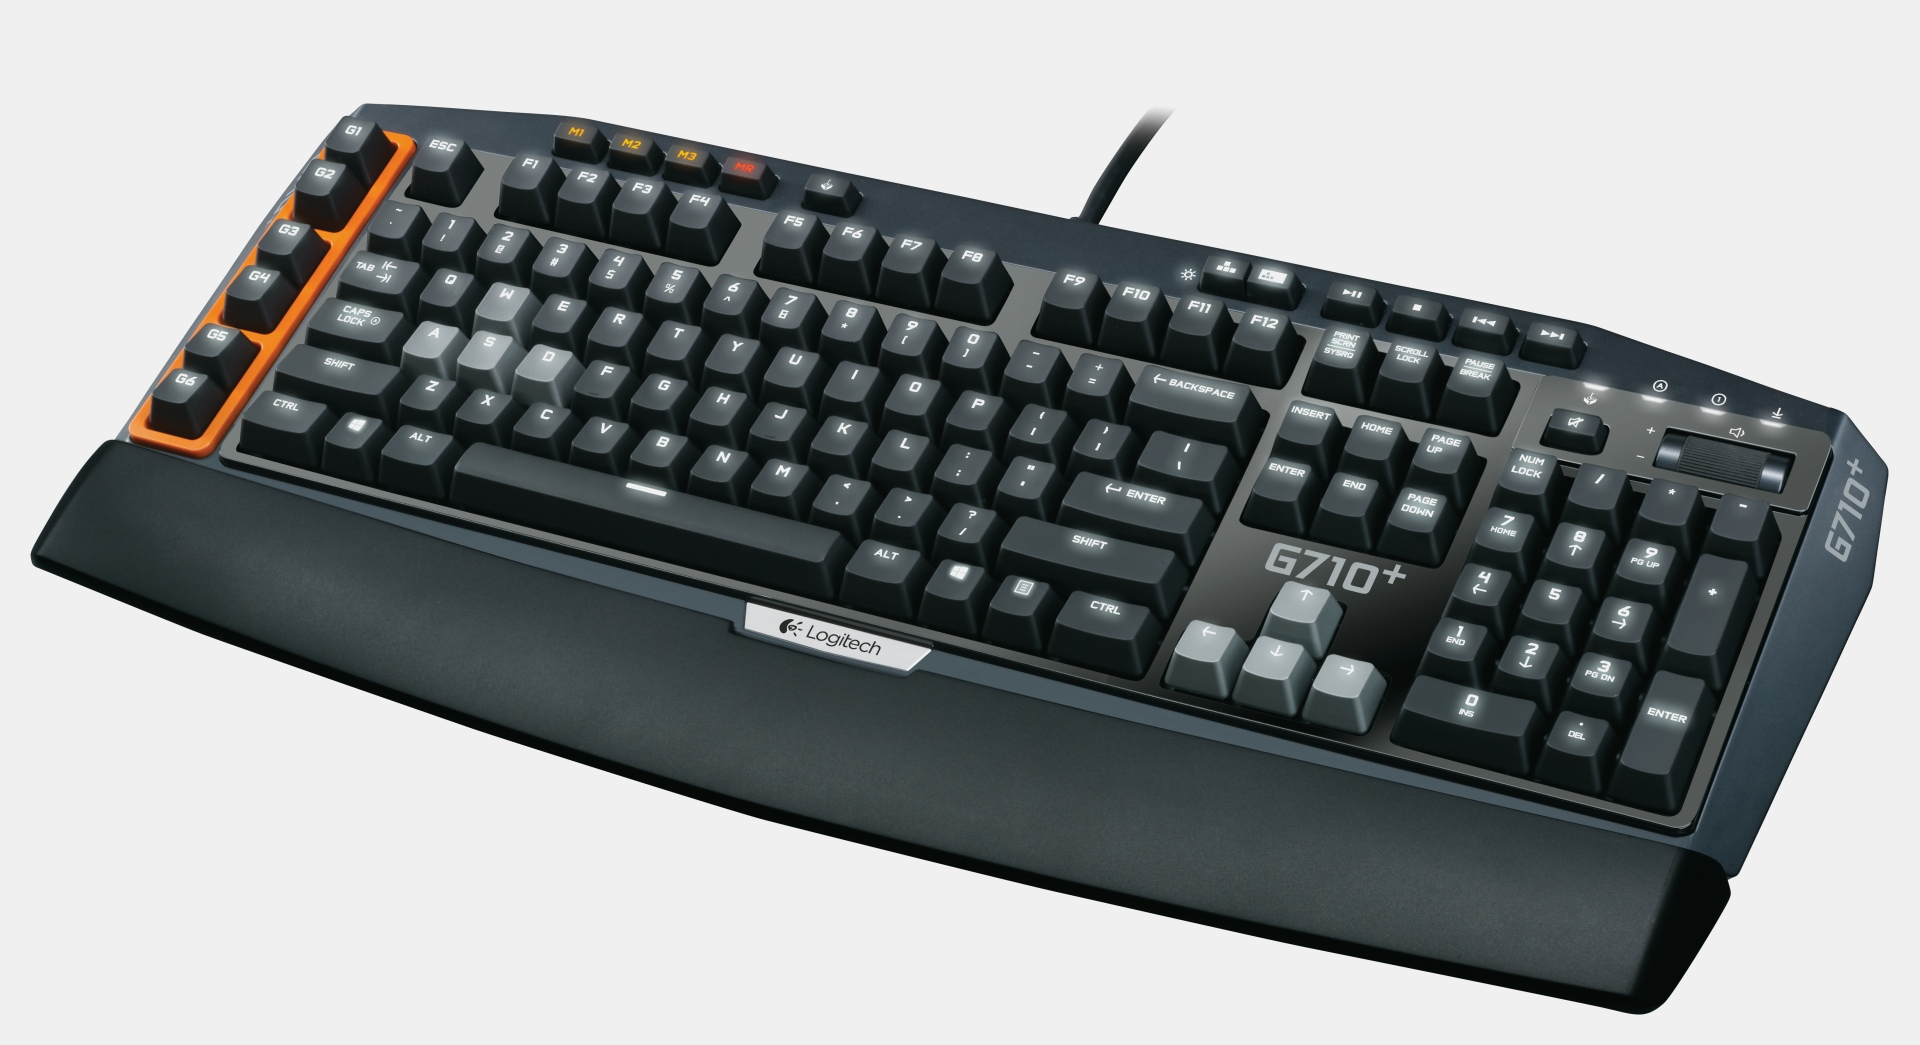 how to clean a logitech g710+